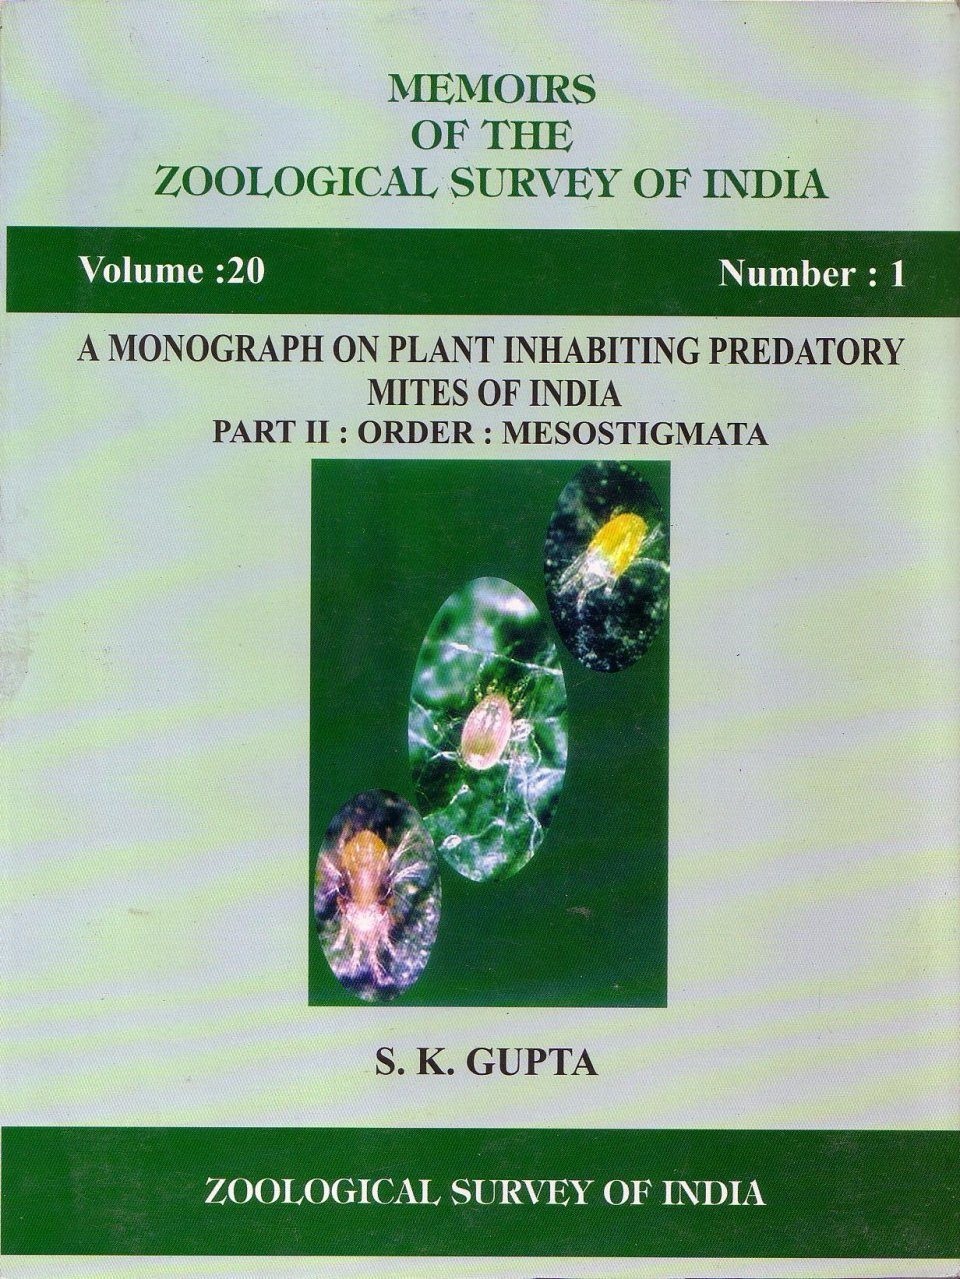 A Monograph on Plant Inhabiting Predatory Mites of India, Part 2